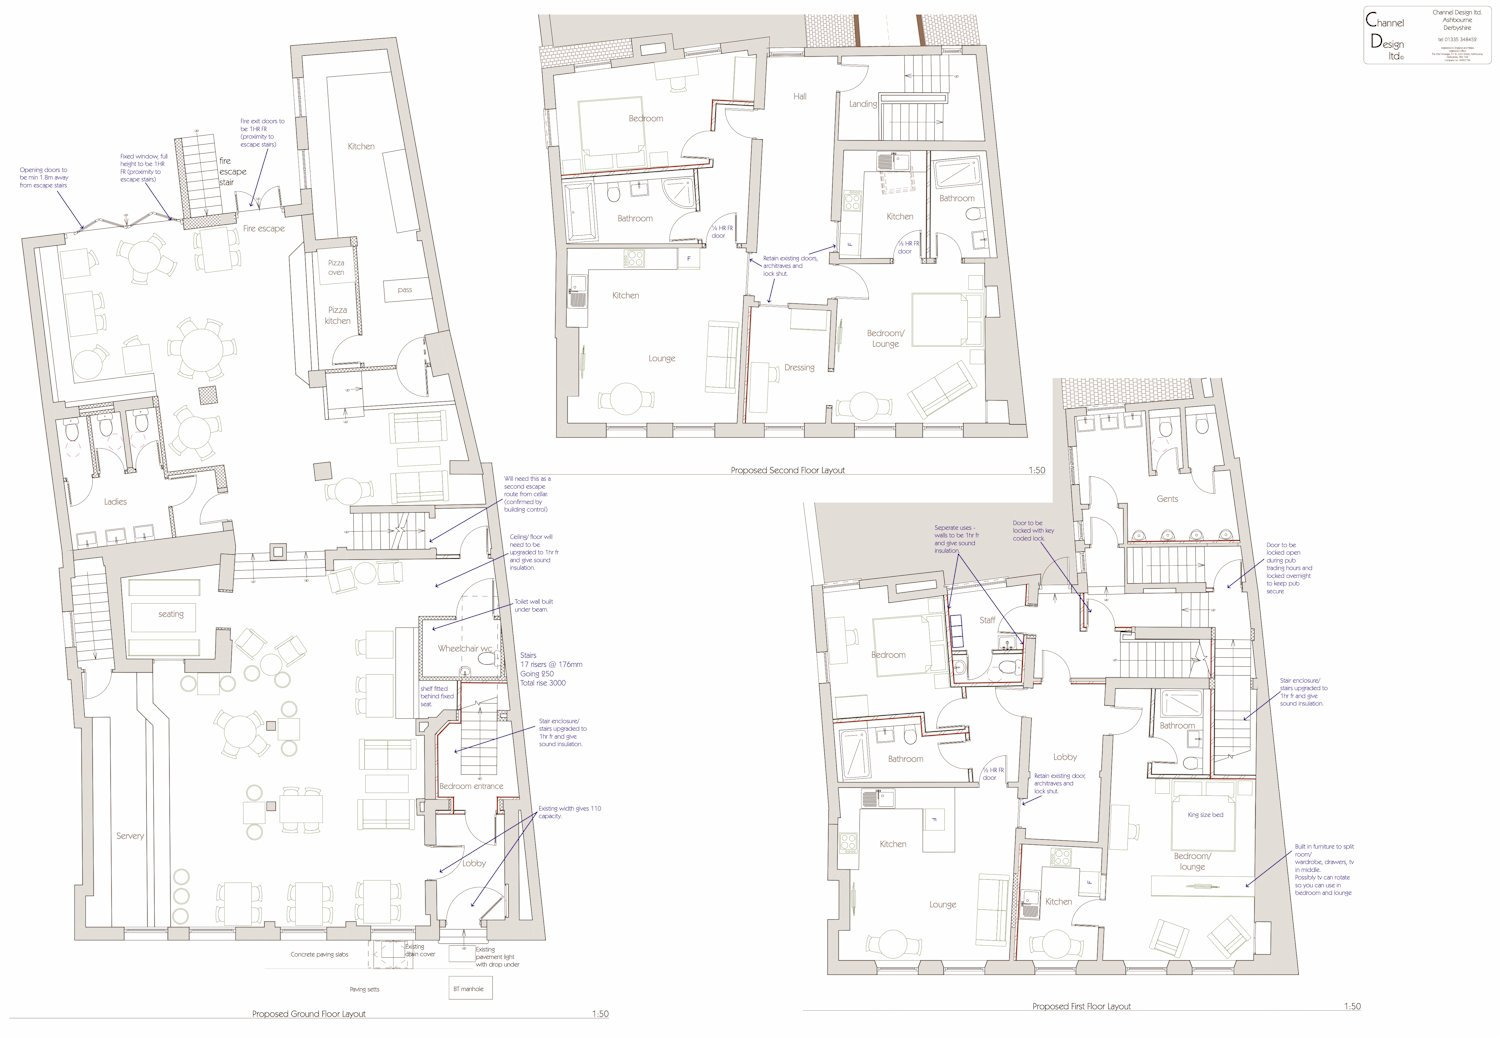 Proposed-Floor-Layouts